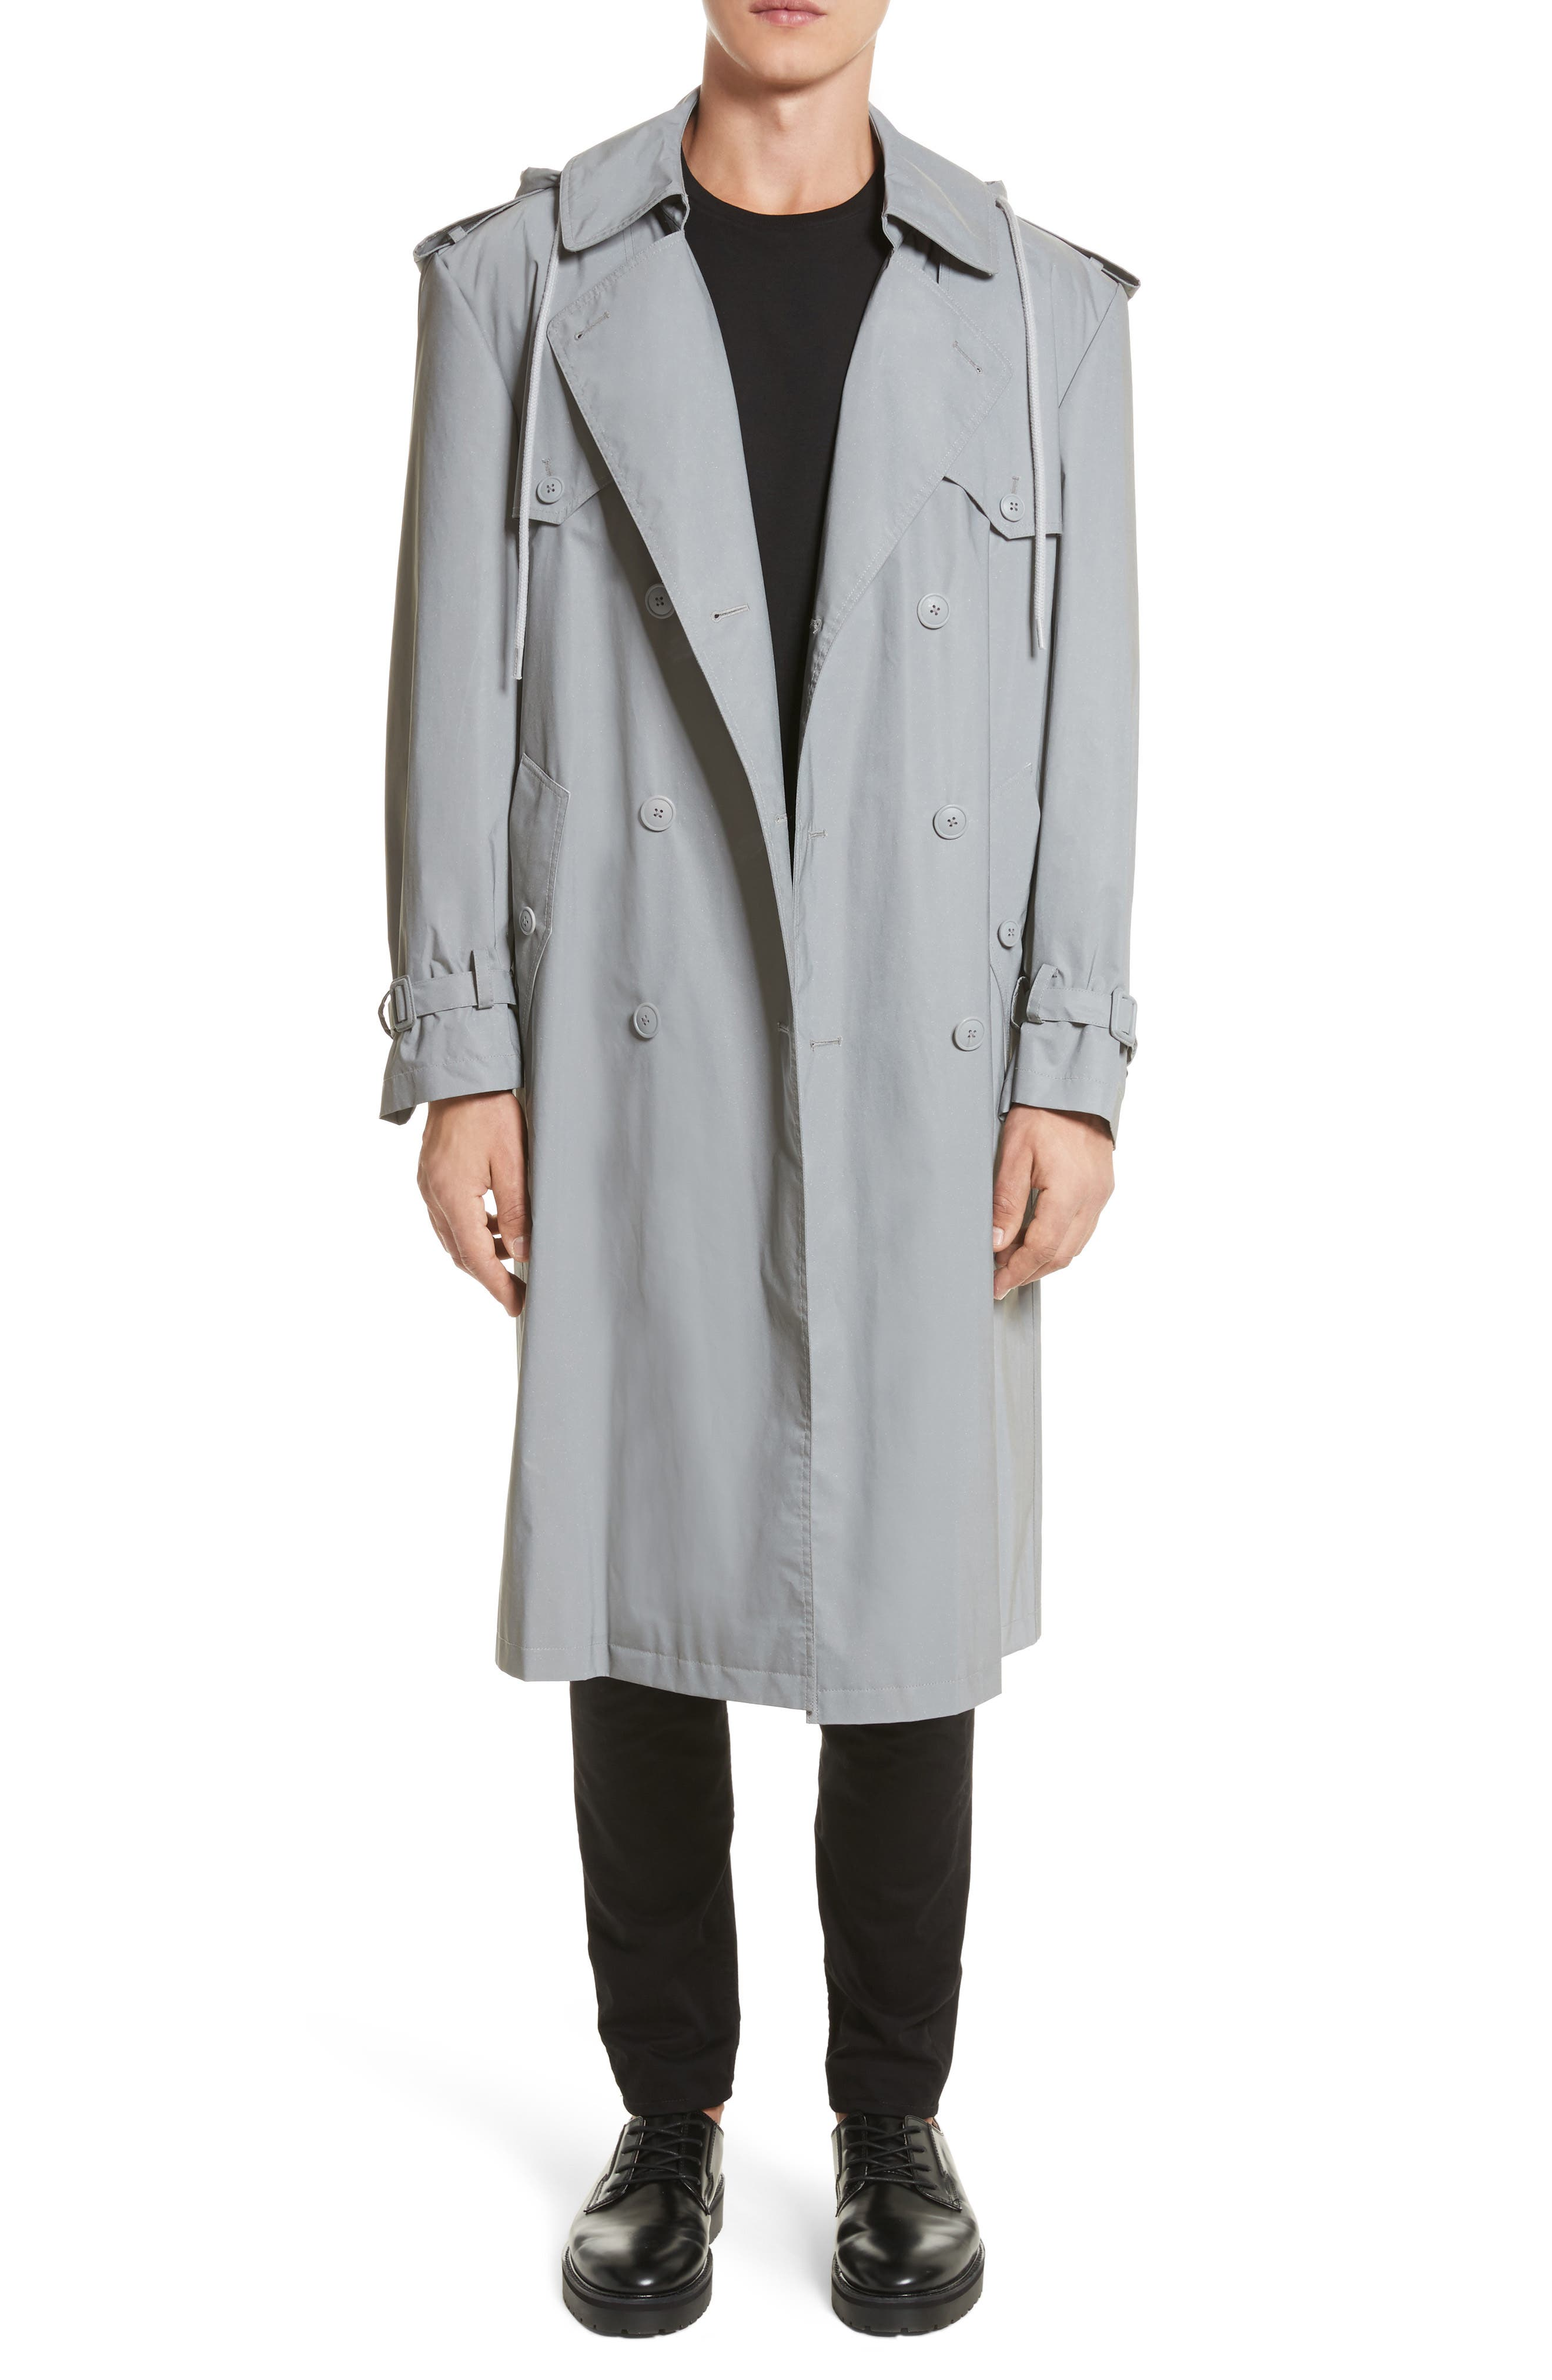 Helmut Lang Reflective Hooded Trench Coat